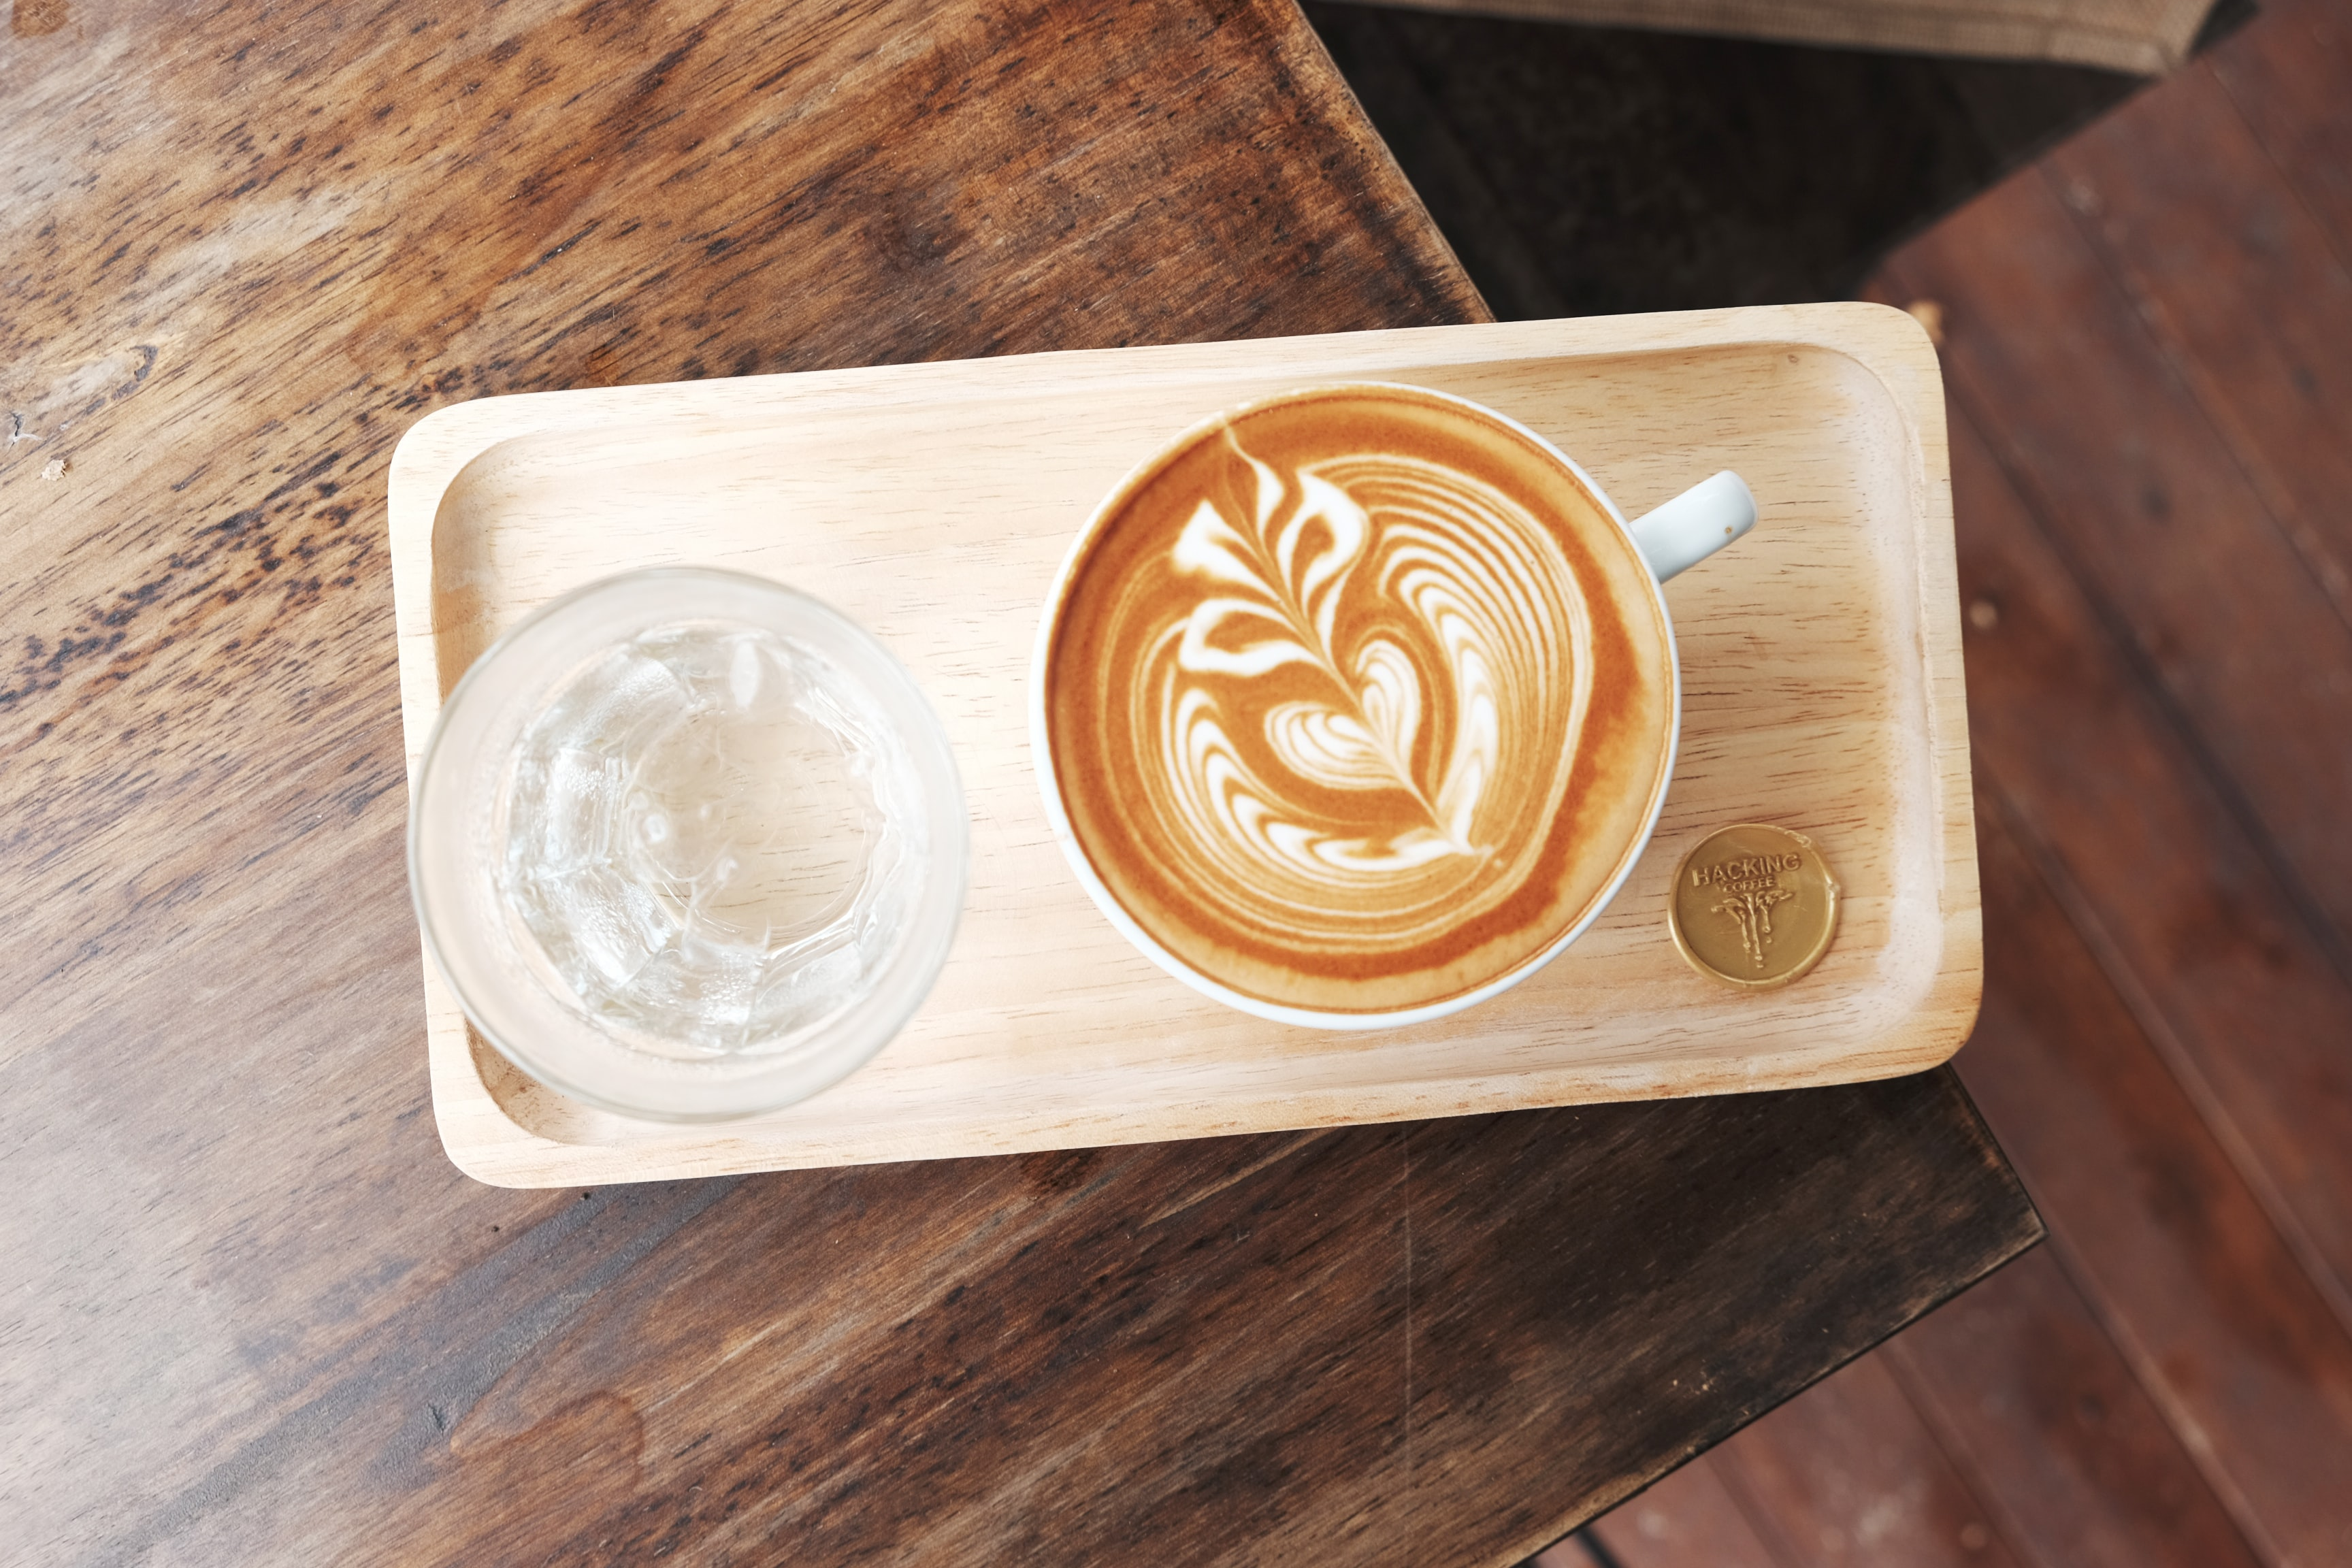 Cappuccino in a white mug with foam art on a wooden tray next to a clear empty glass